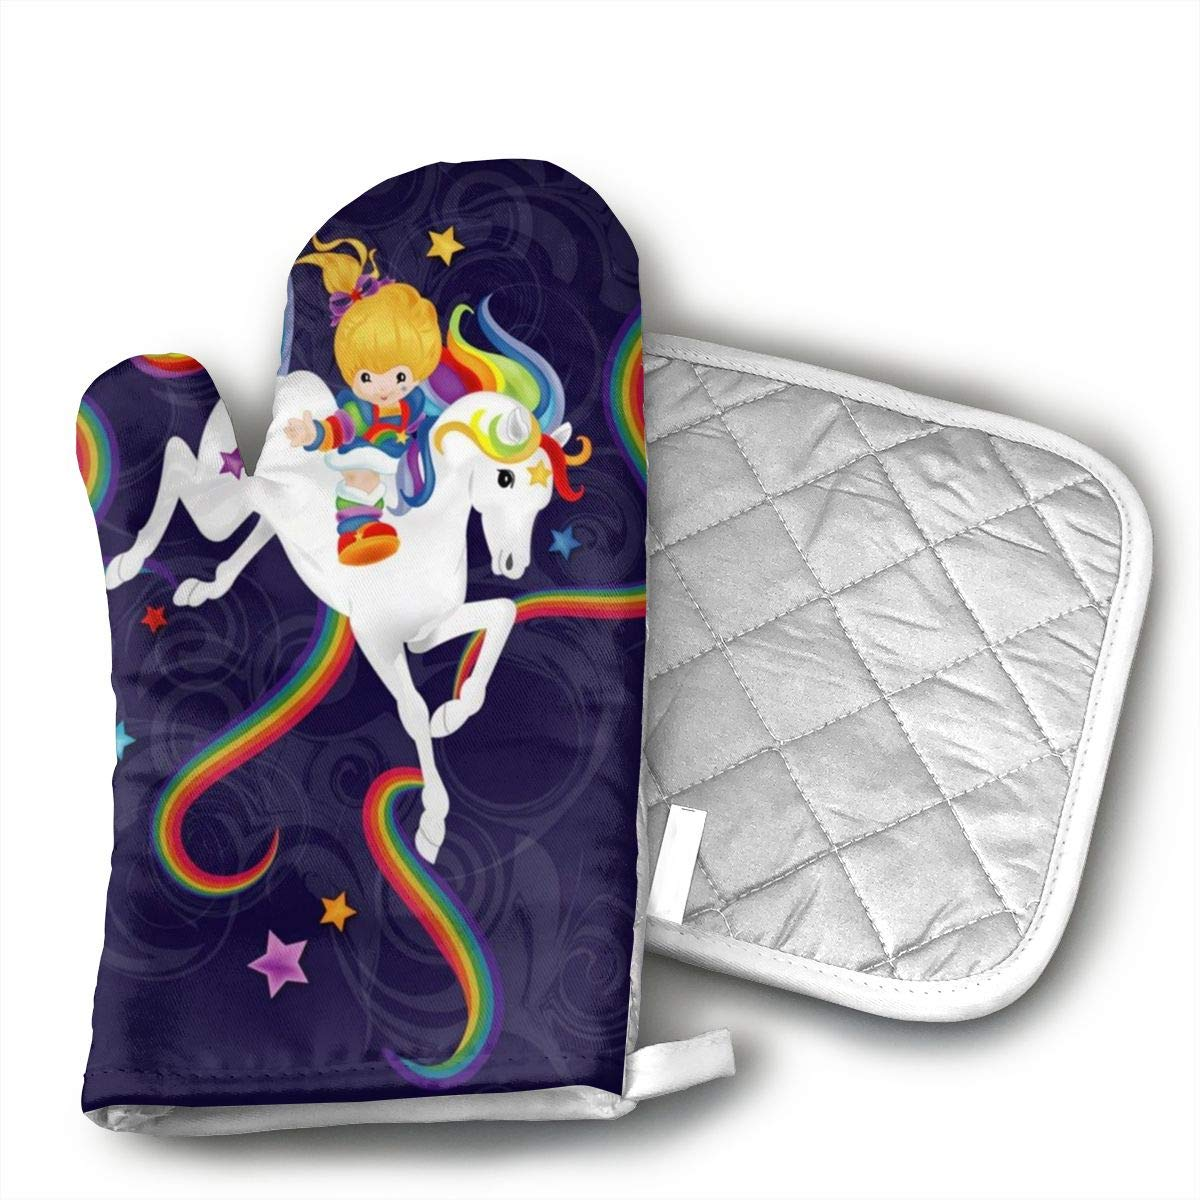 HAIQLK Rainbow Brite and Starlite Memories Oven Mitts with Quilted Cotton Lining - Professional Heat Resistant Potholder Kitchen Gloves